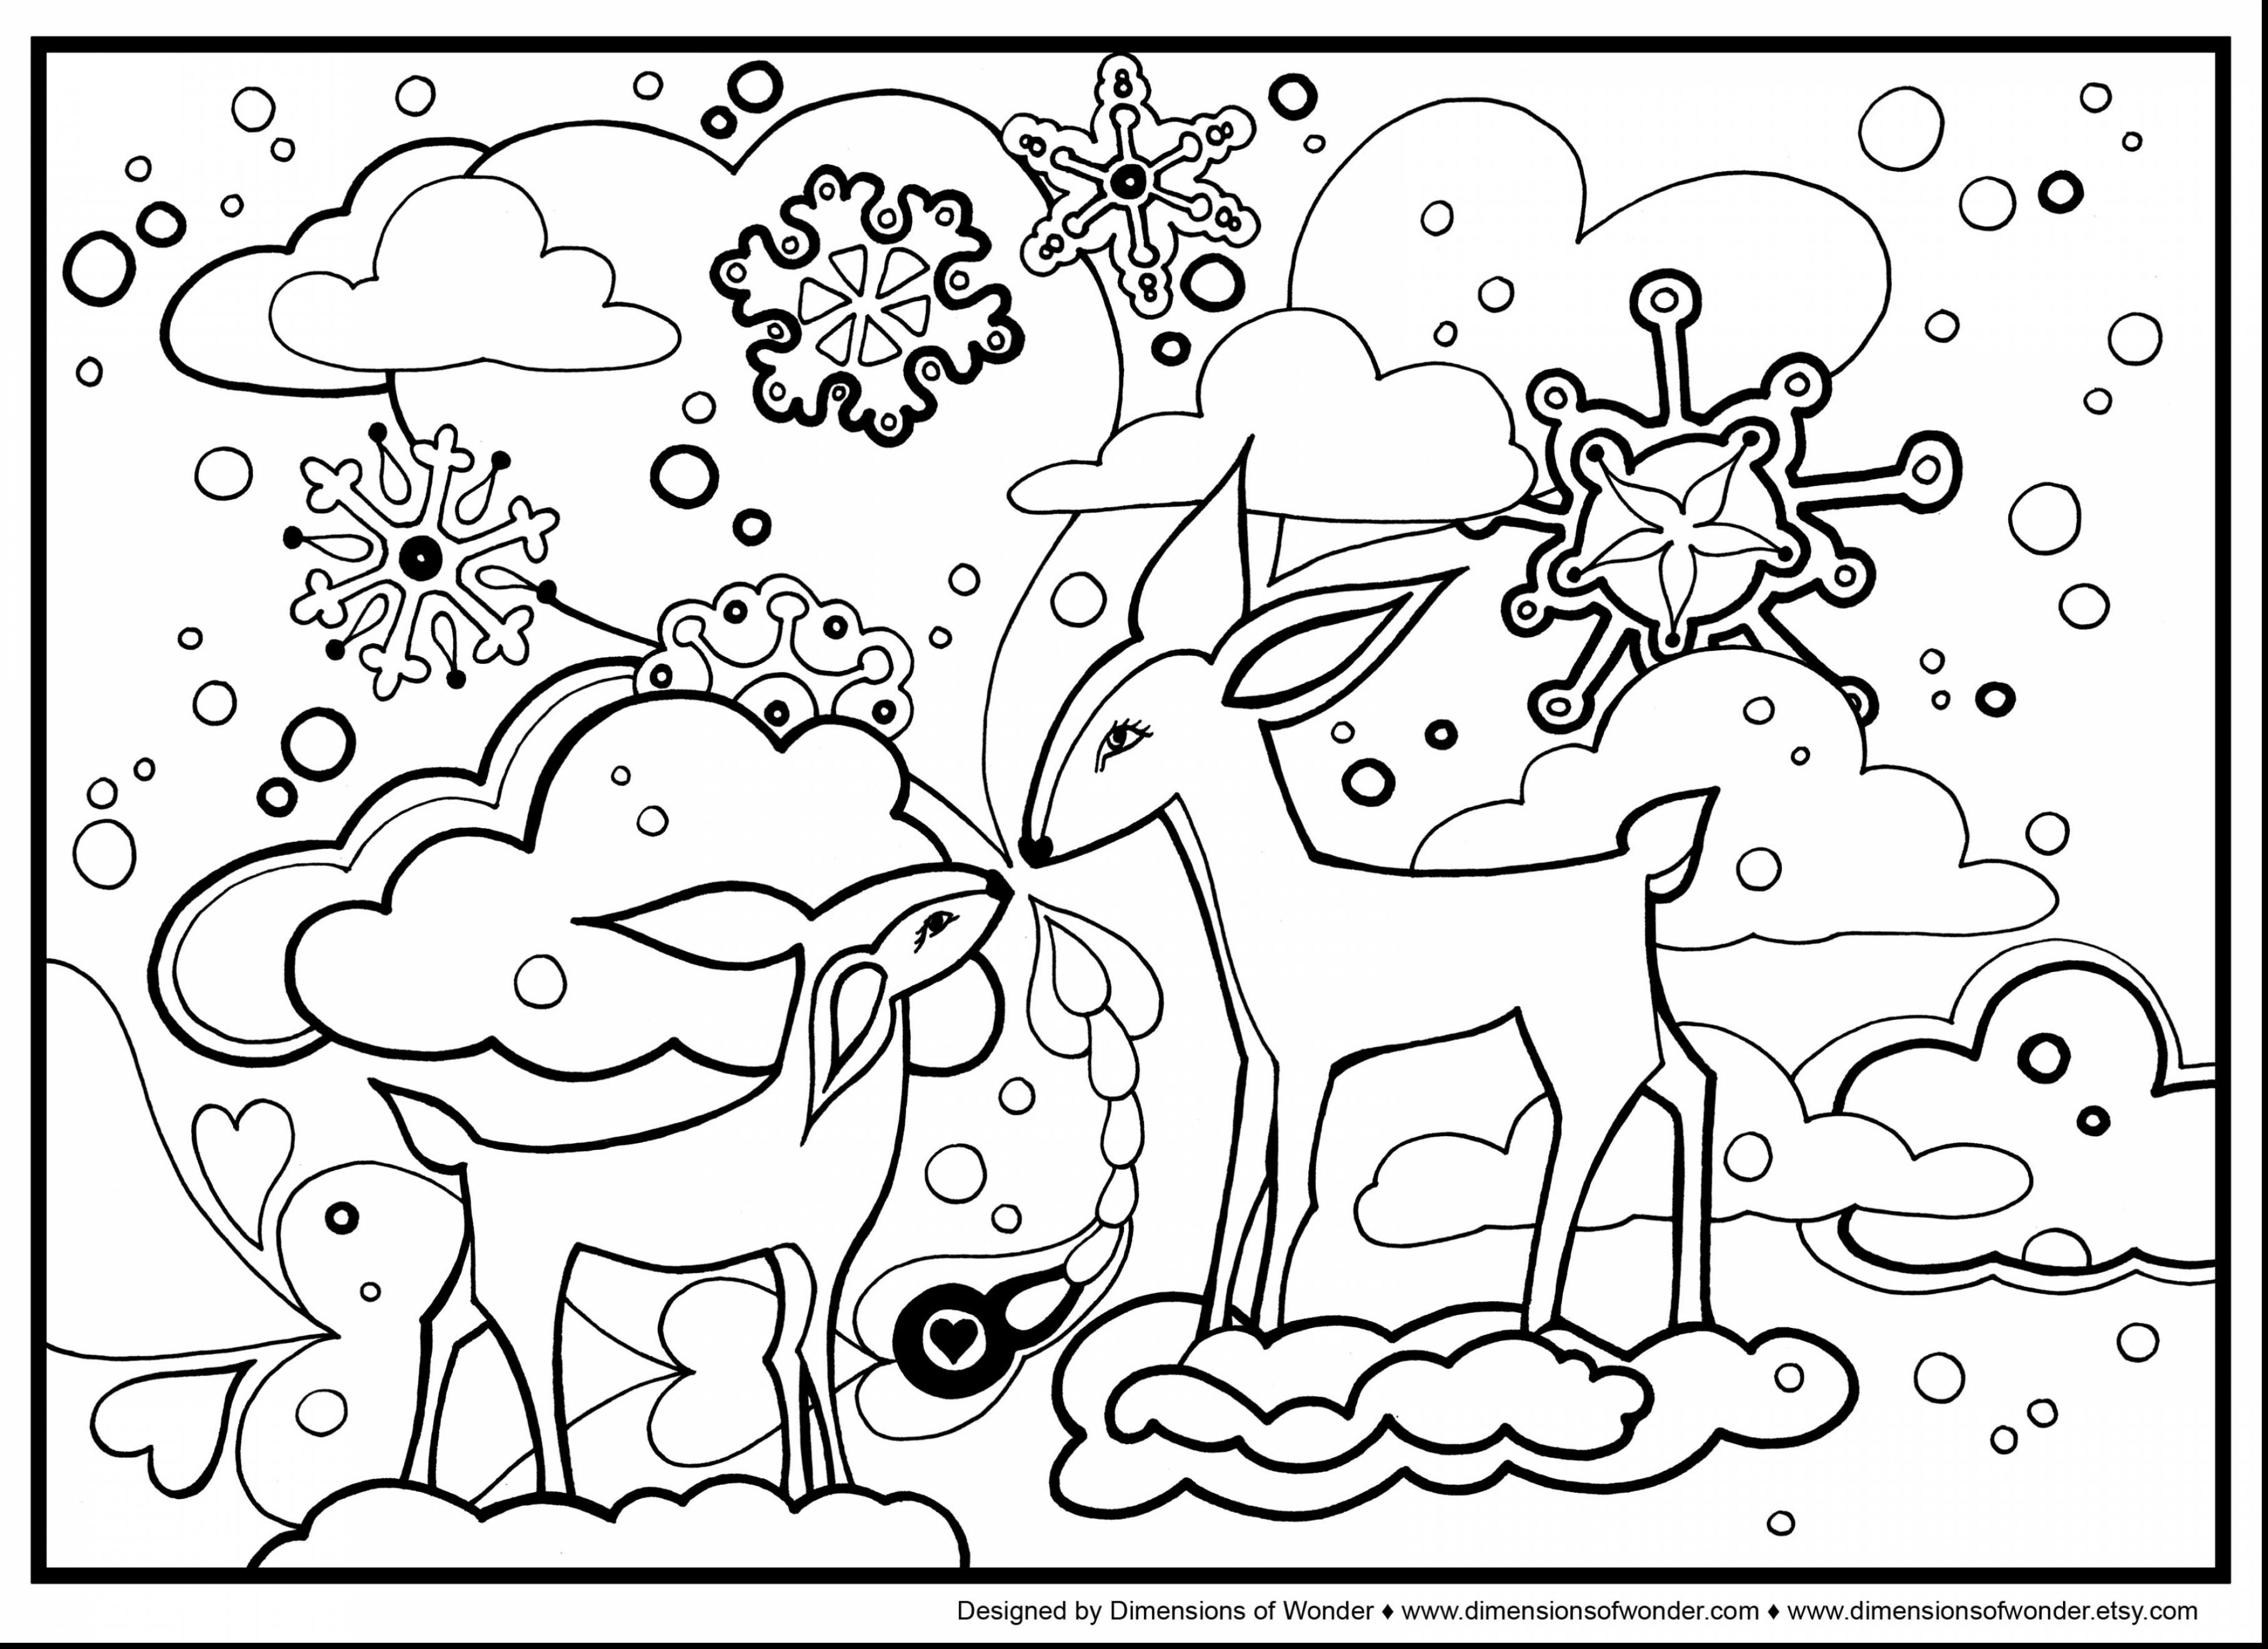 Image Result For Free Printable Landscape Coloring Pages For Adults Christmas Coloring Pages Animal Coloring Pages Coloring Pages Nature